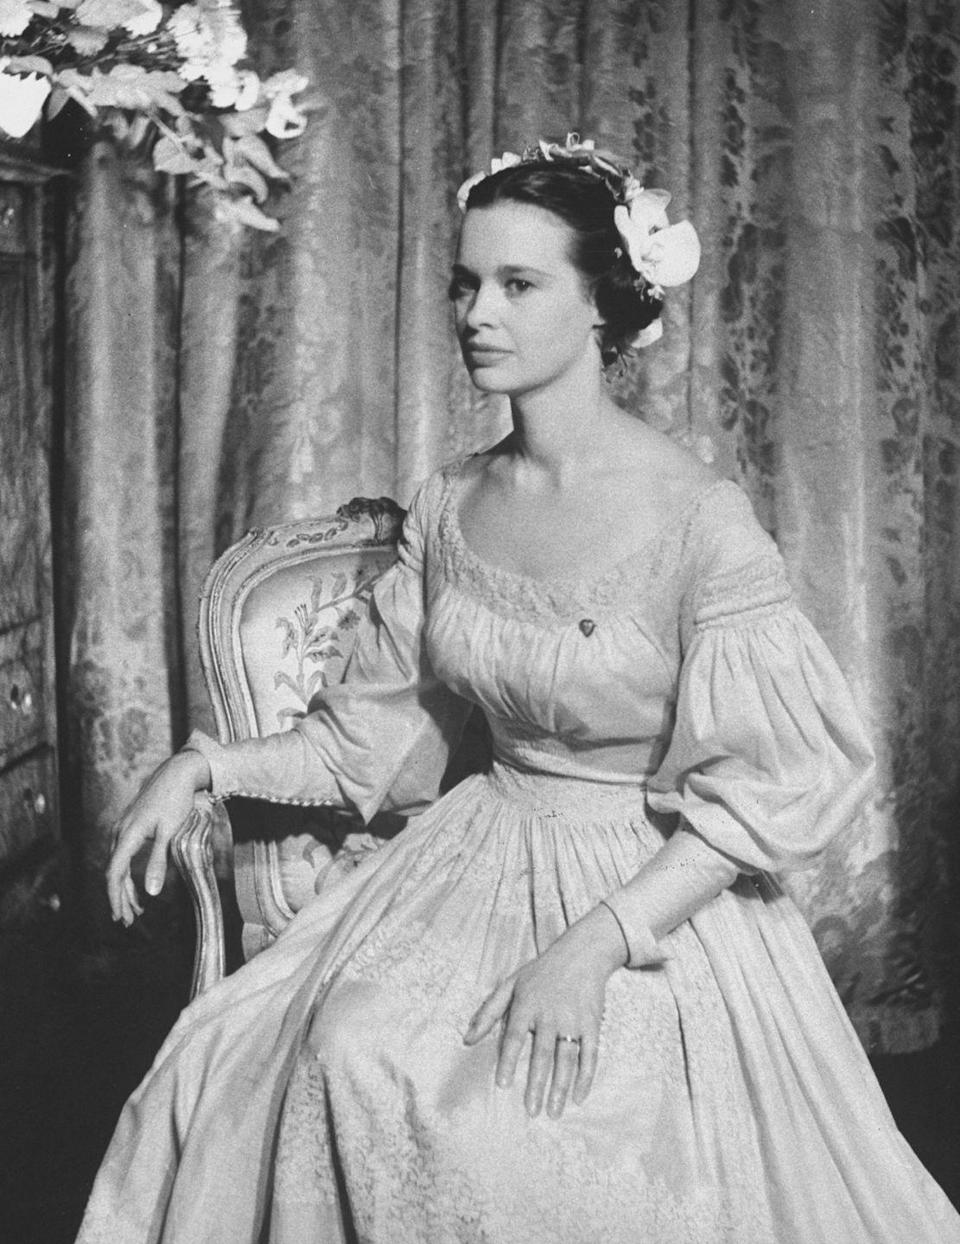 <p>Gloria Vanderbilt's third husband was director Sidney Lumet. They married in 1956 and divorced in 1963, so the relationship was admittedly pretty short-lived. Even so, Gloria looked absolutely stunning on her wedding day, wearing a beige gown rather than the traditional white, which was made out of French linen that dates from 1830. Note: This time, she ditched the pearls. </p>